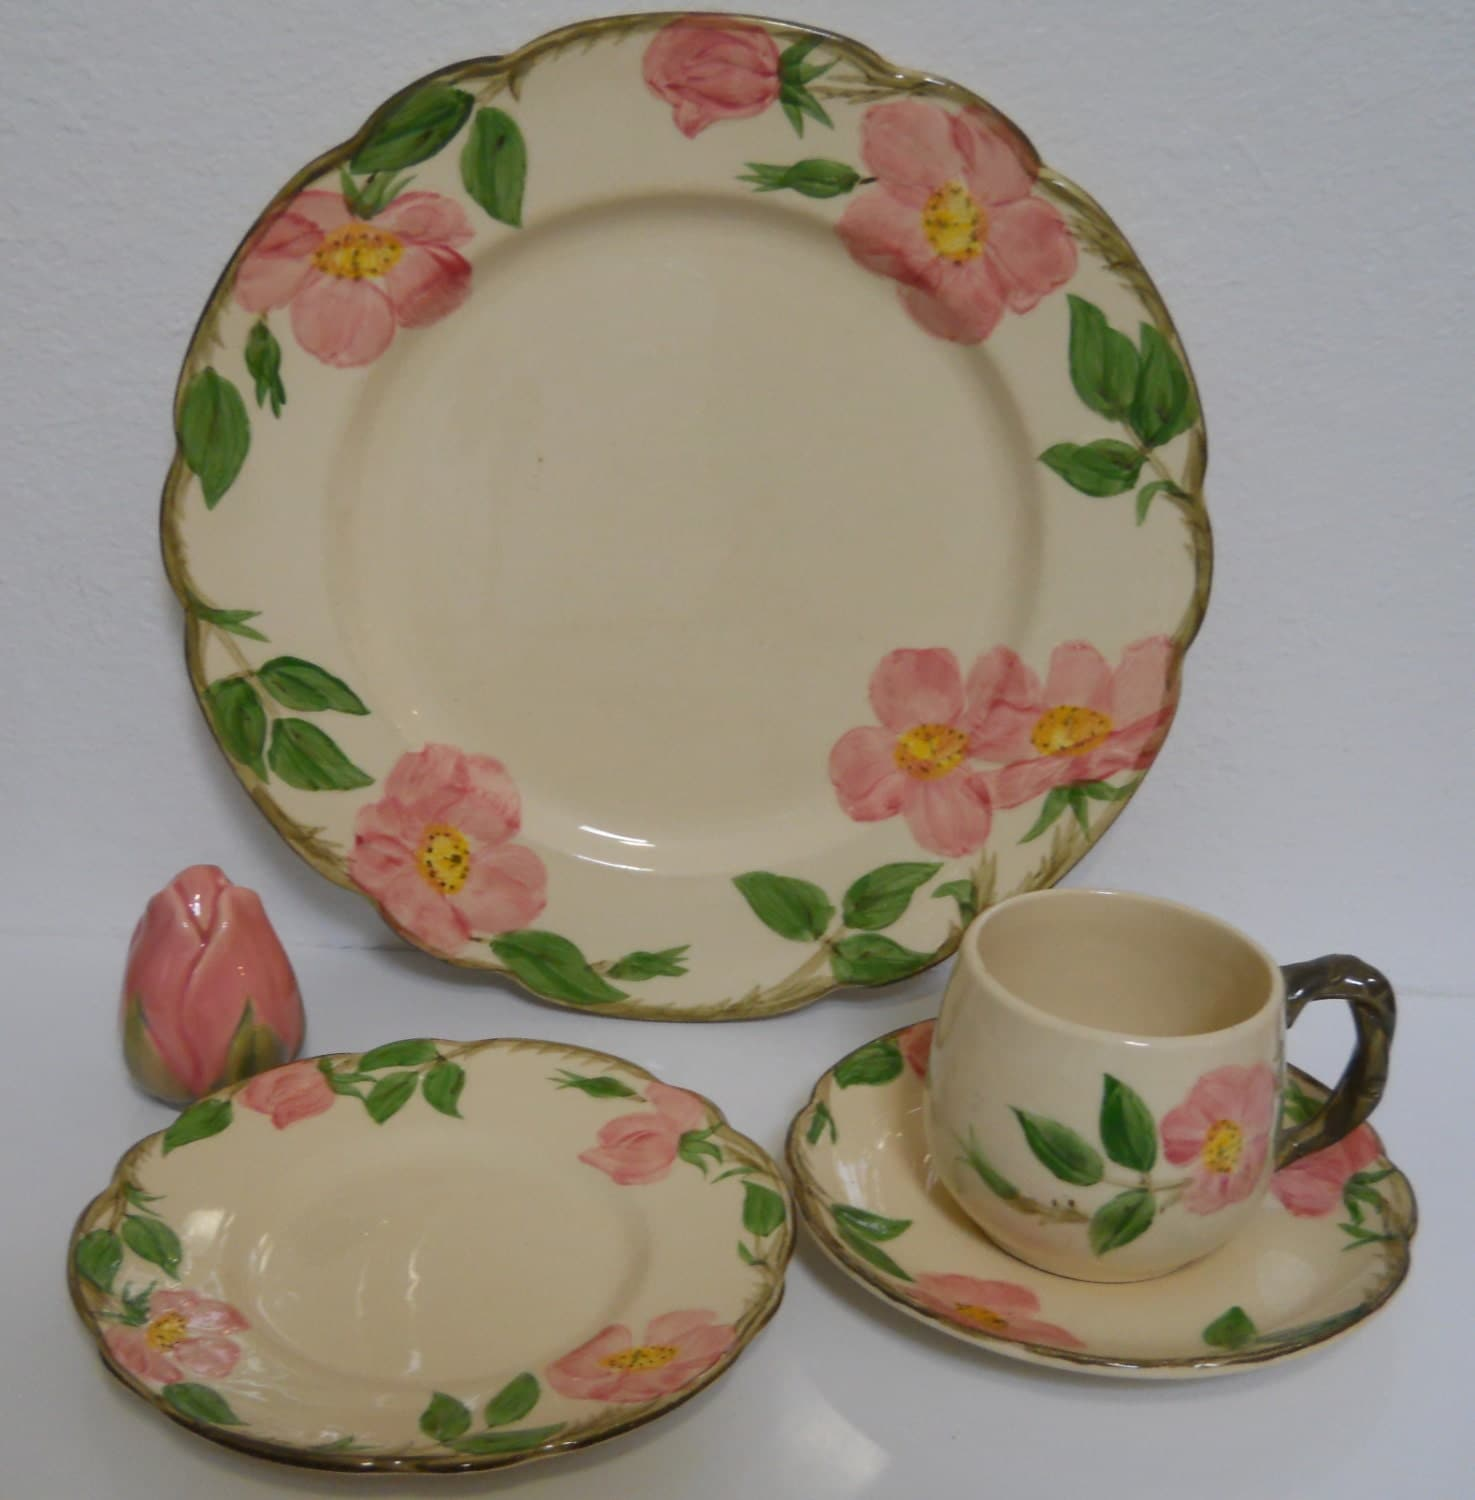 Franciscan Ware Desert Rose Dinnerware Dishes